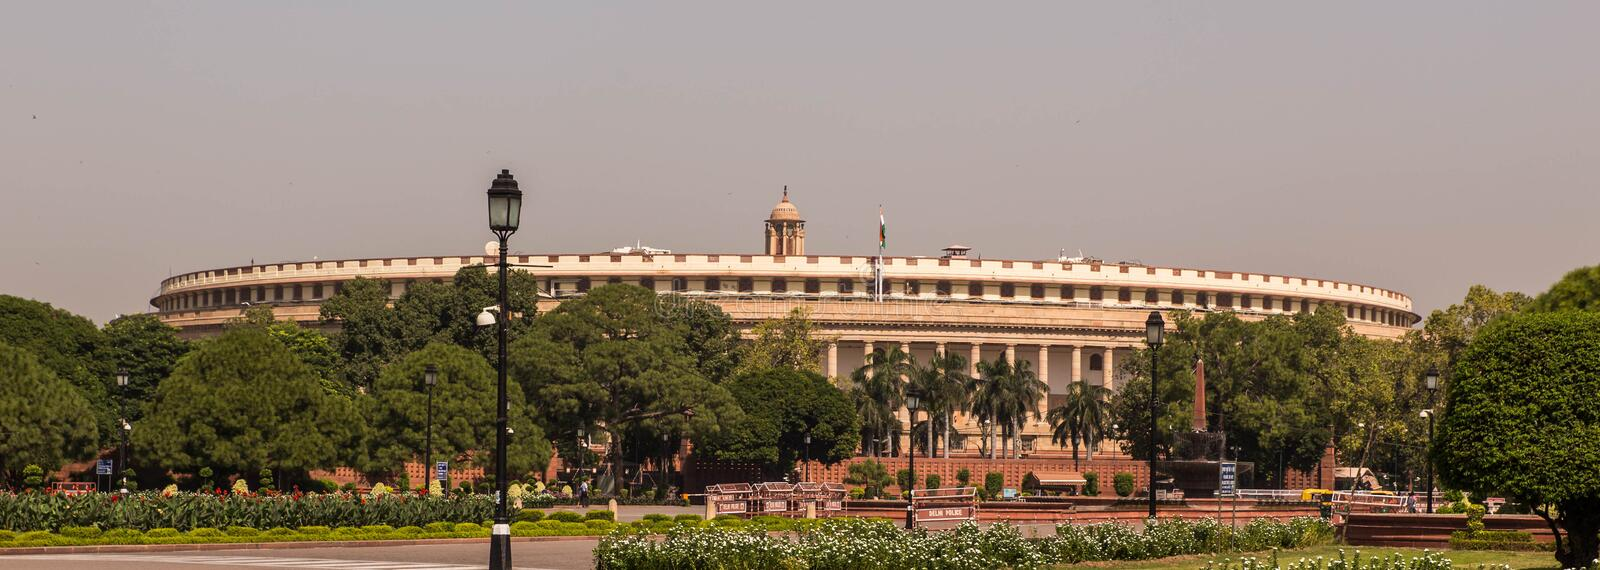 Parliament Of India in Delhi. He Sansad Bhavan English: Parliament House is the house of the Parliament of India, which contains the Lok Sabha and the Rajya stock photo